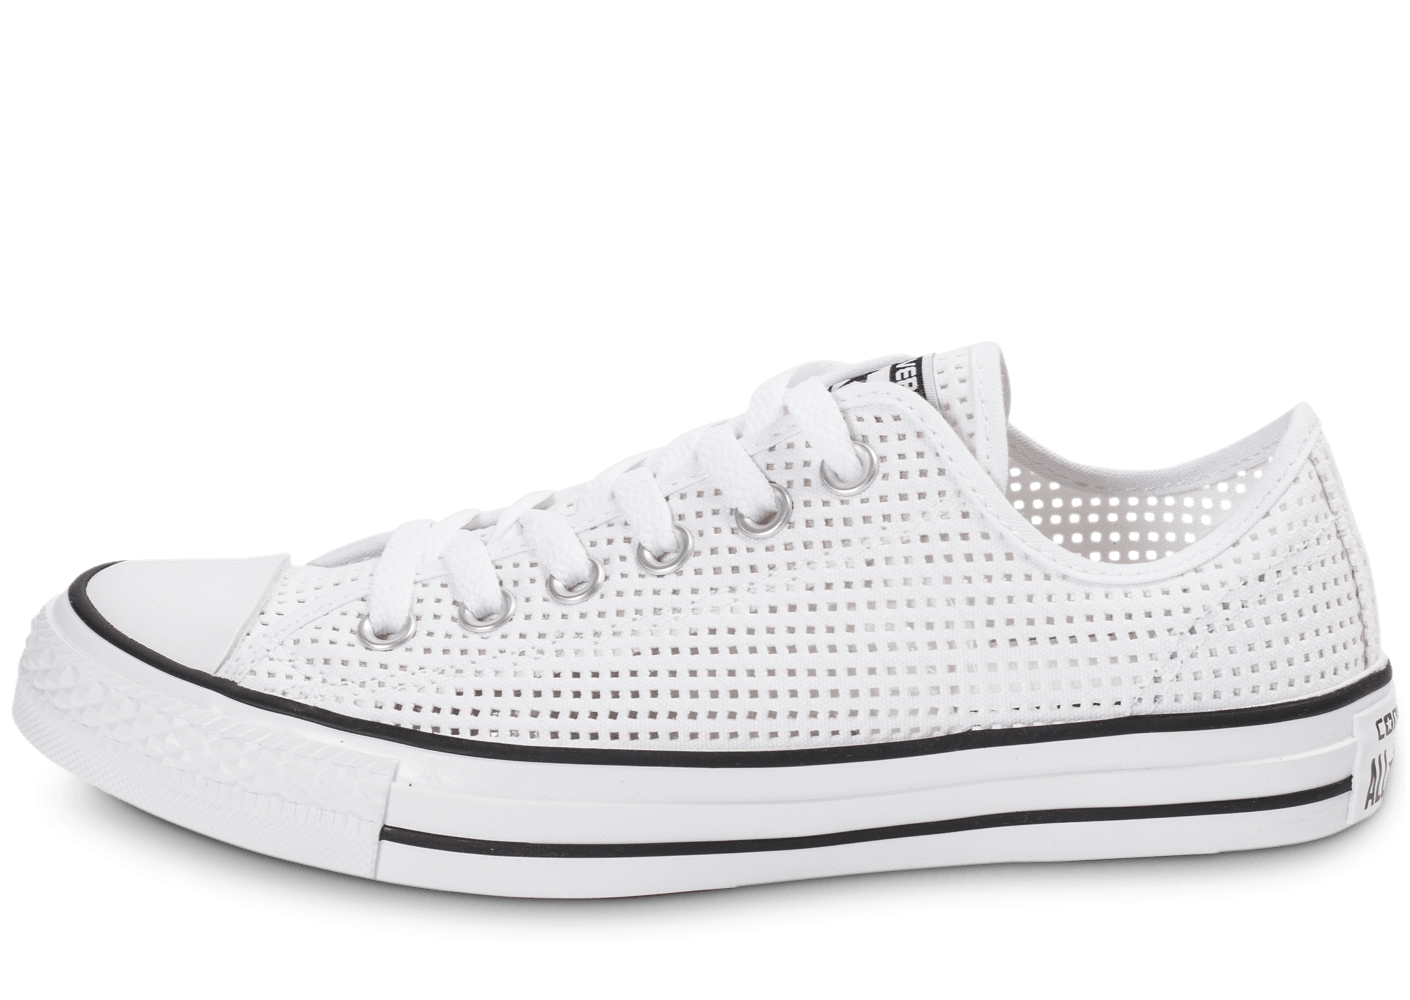 5f4f553b8d1 Converse Chuck Taylor All-Star Perf OX blanche - Chaussures Chaussures -  Chausport